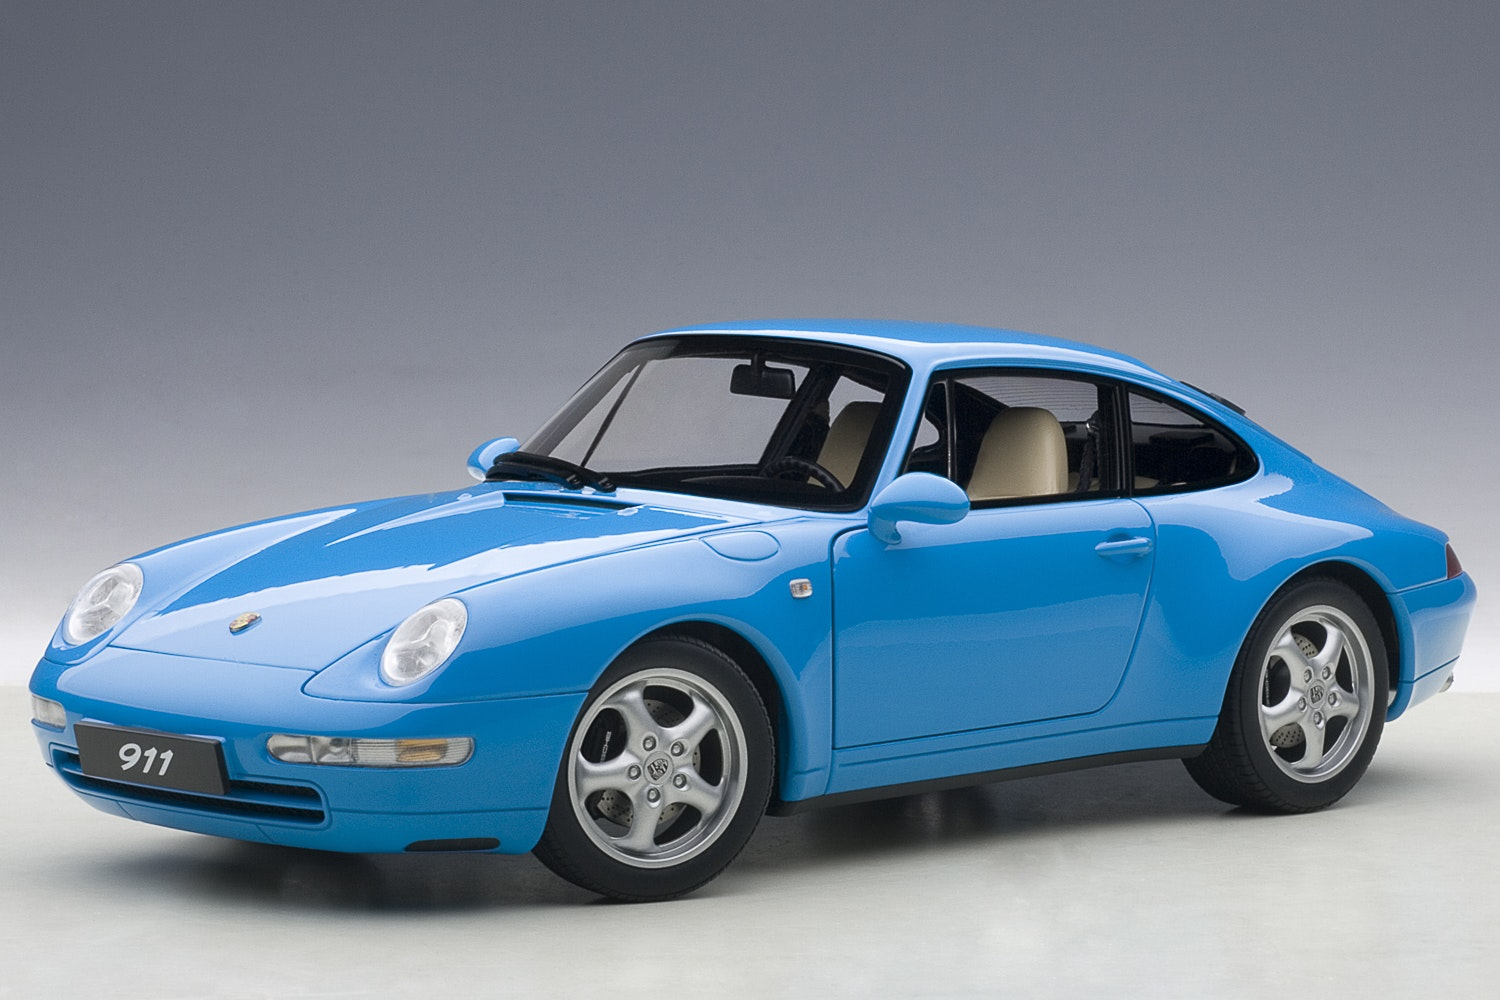 Porsche 993 Carrera 1995, Riviera Blue Metallic